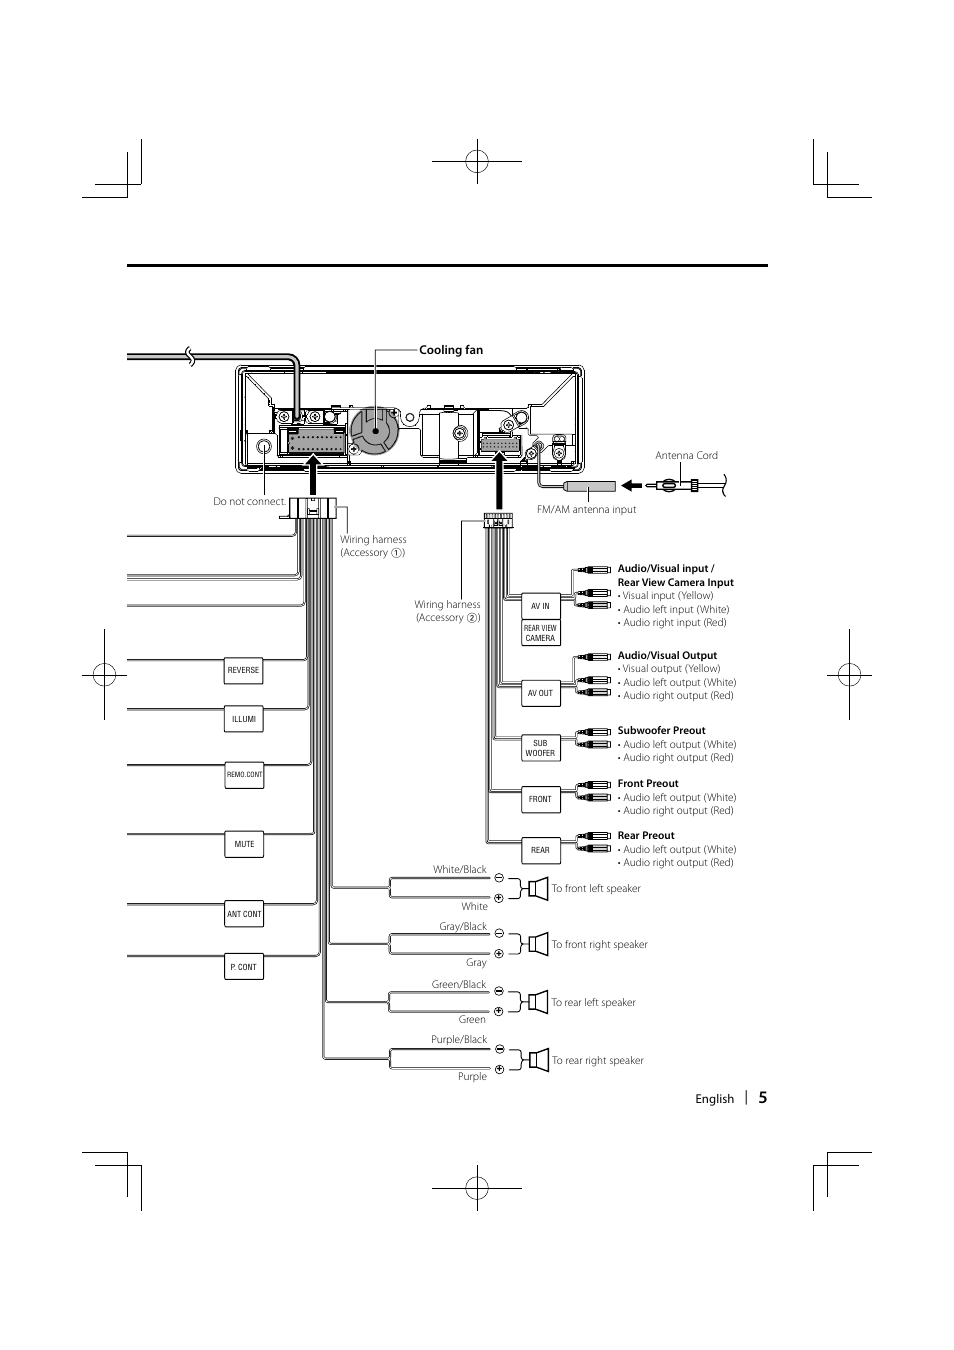 Kenwood KVT-614 User Manual | Page 5 / 32 on dual stereo wiring harness diagram, electrical light switch wiring diagram, xenon wiring diagram, reversing solenoid wiring diagram, center console wiring diagram, dvd wiring diagram, driving lights wiring diagram, tv wiring diagram, abs brakes wiring diagram, cruise control wiring diagram, radio wiring diagram, a/c wiring diagram, cd player wiring diagram, alarm wiring diagram, dc reversing relay wiring diagram, push button start wiring diagram, reverse polarity relay diagram, relay schematic wiring diagram, heated seat wiring diagram, auto wiring diagram,